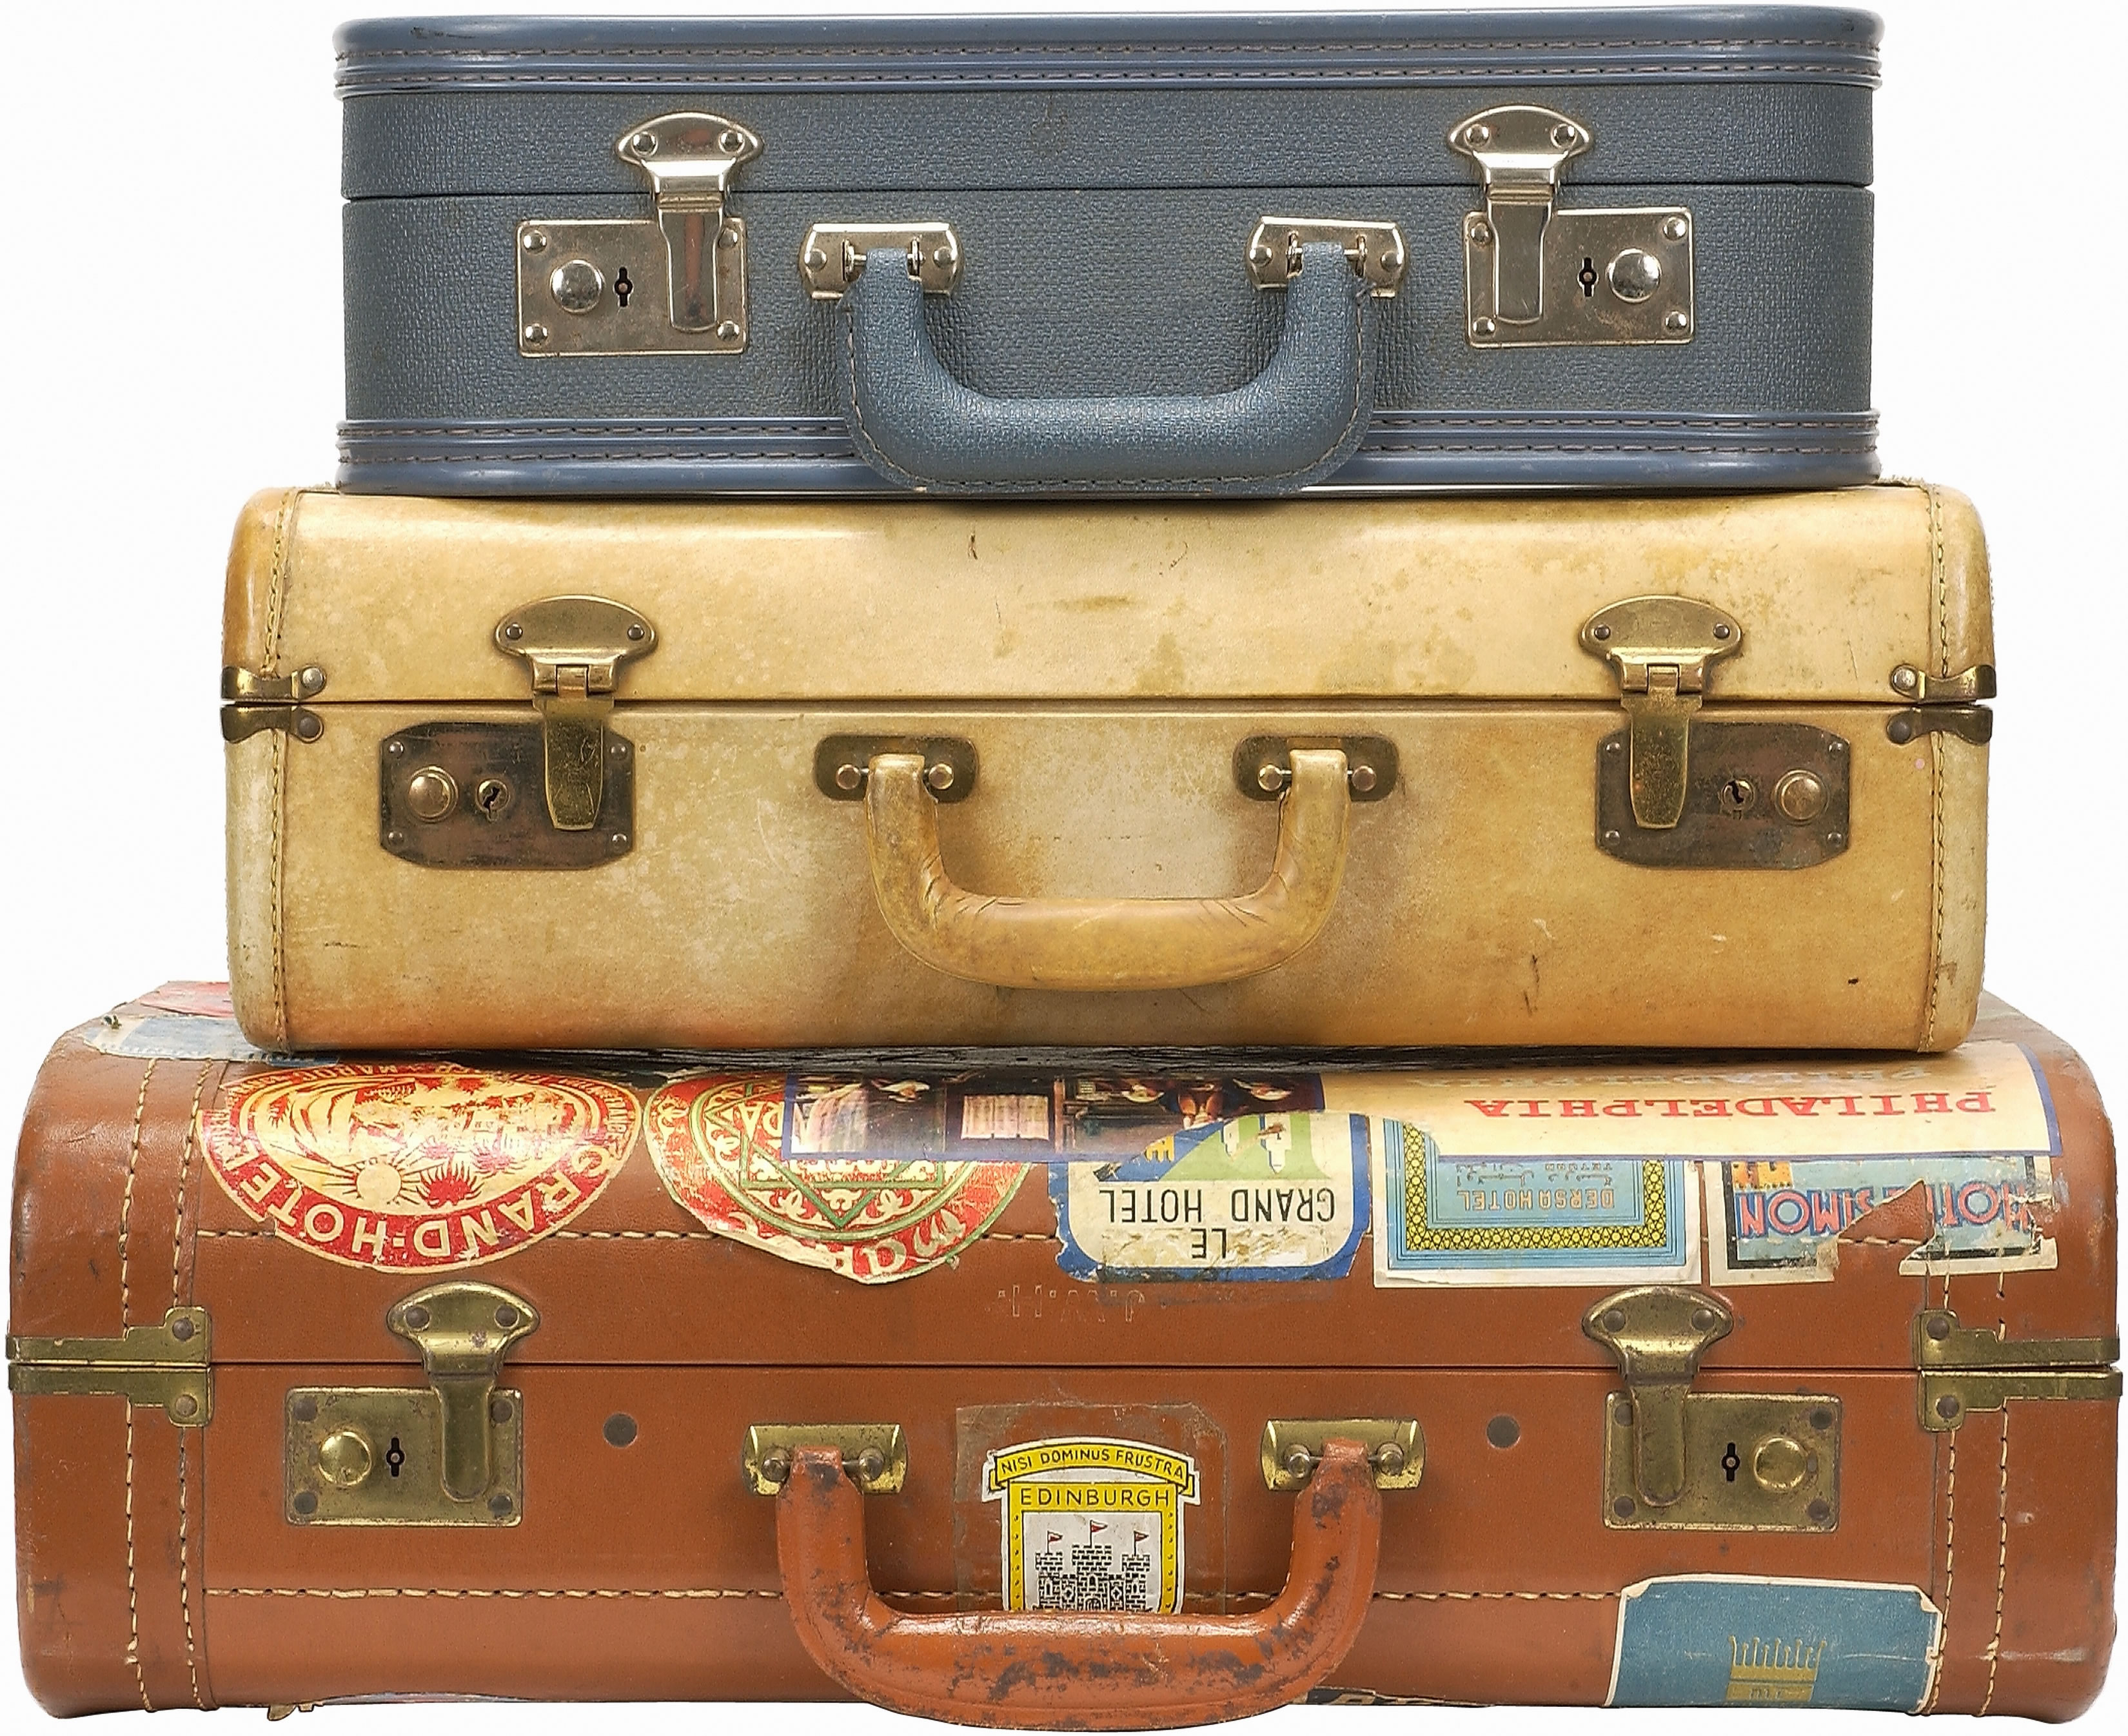 Vintage Luggage: Stack of three antique suitcases. - Vintage Suitcase PNG